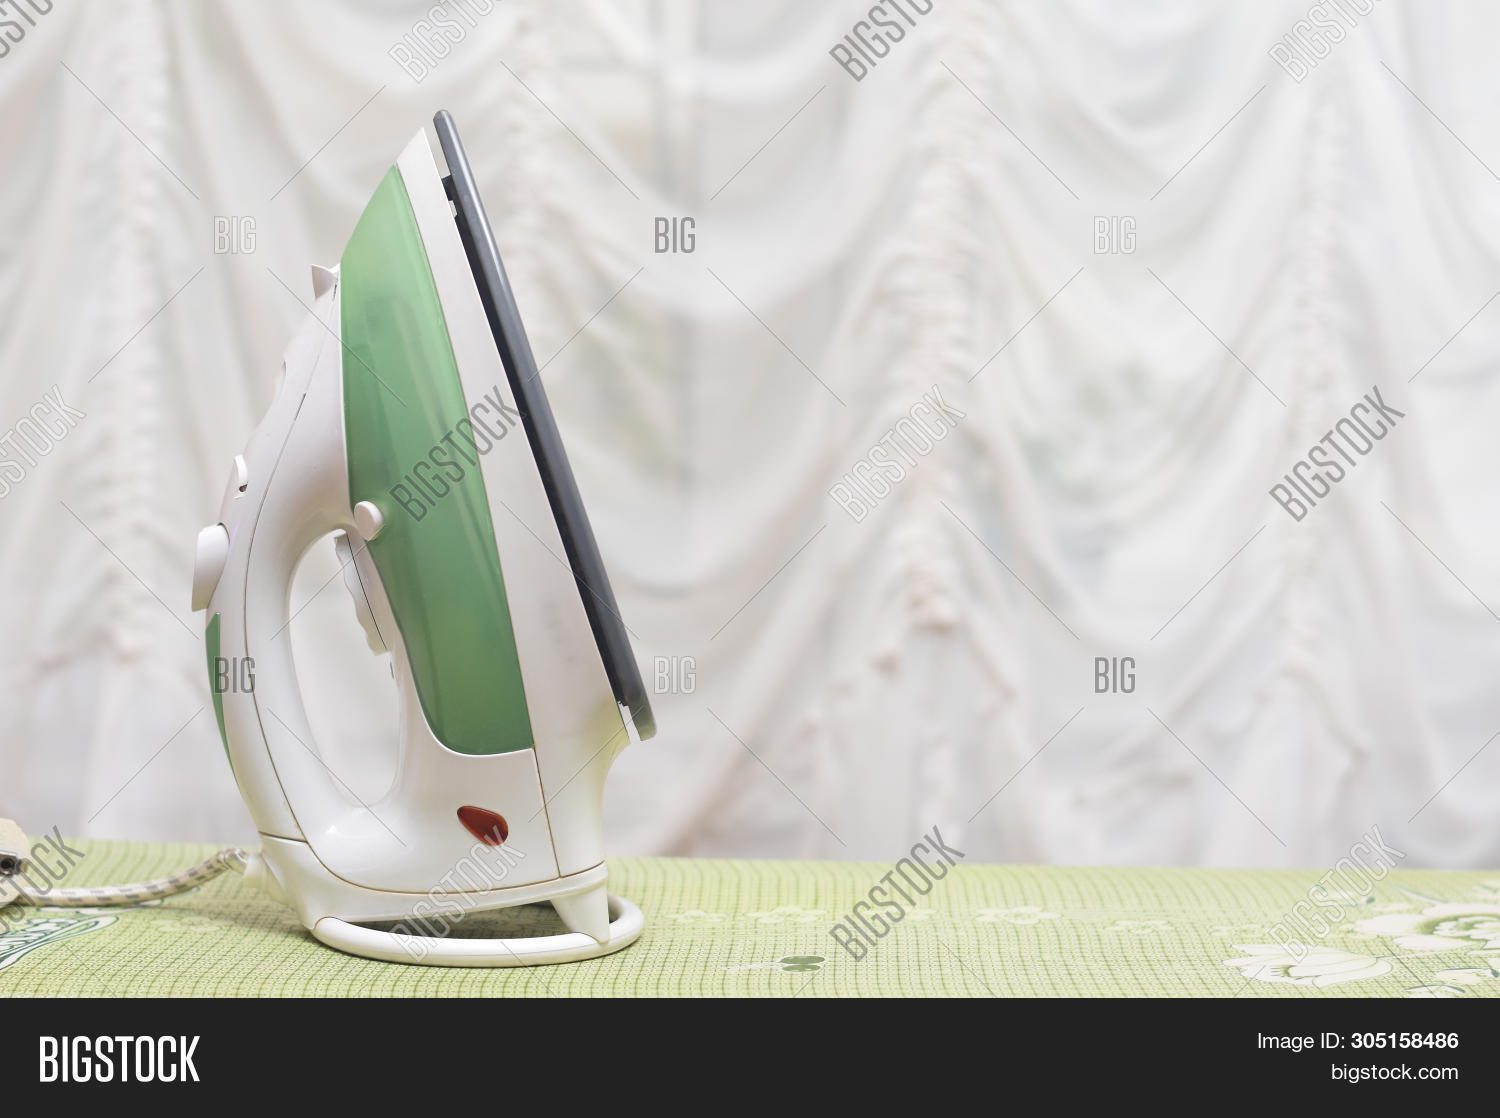 Iron And Clothes On Ironing Board. Concept Of Ironing